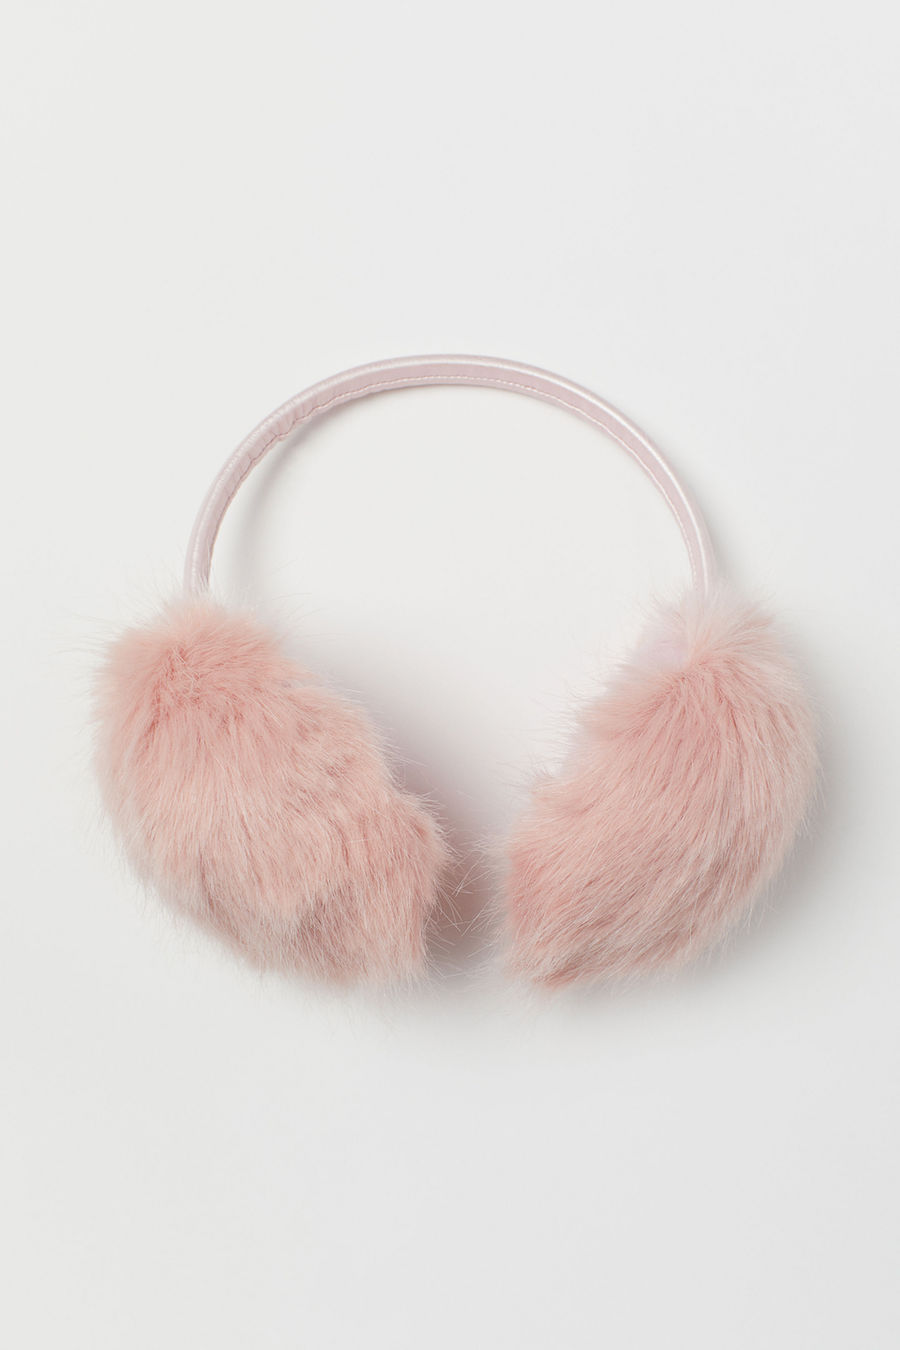 Cool kids' gifts under $15:  Pink fuzzy earmuffs from H&M